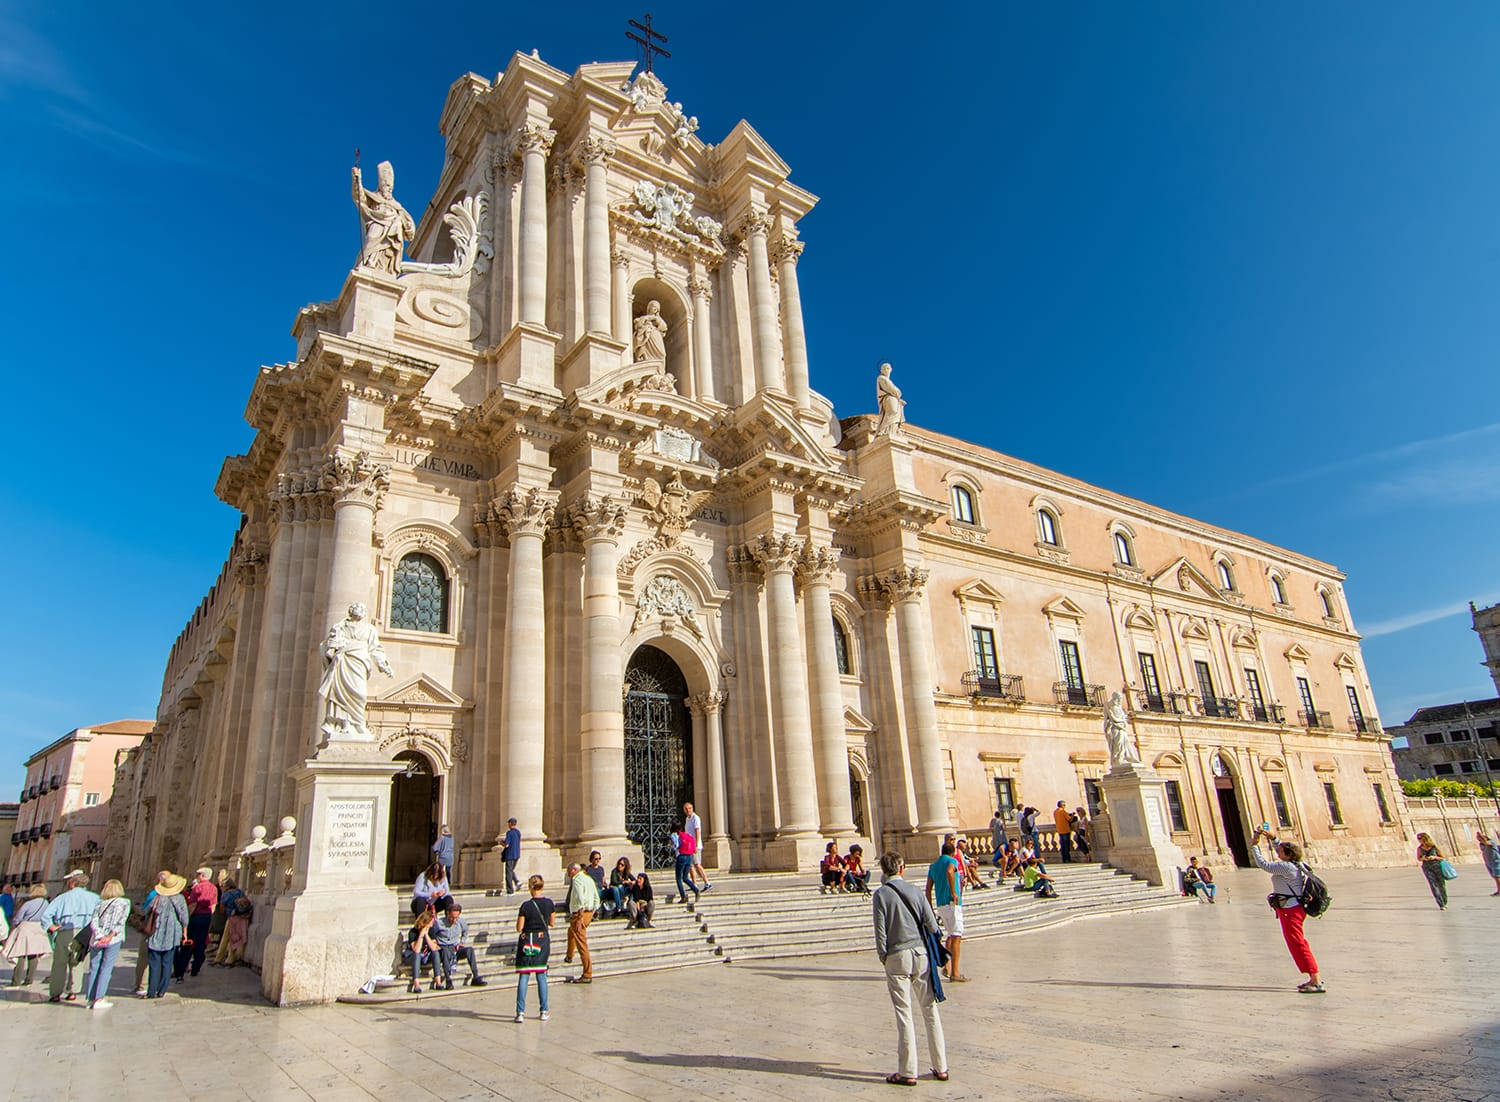 Tourists visiting Duomo Square in Ortigia, the historical city centre of Syracuse, Italy